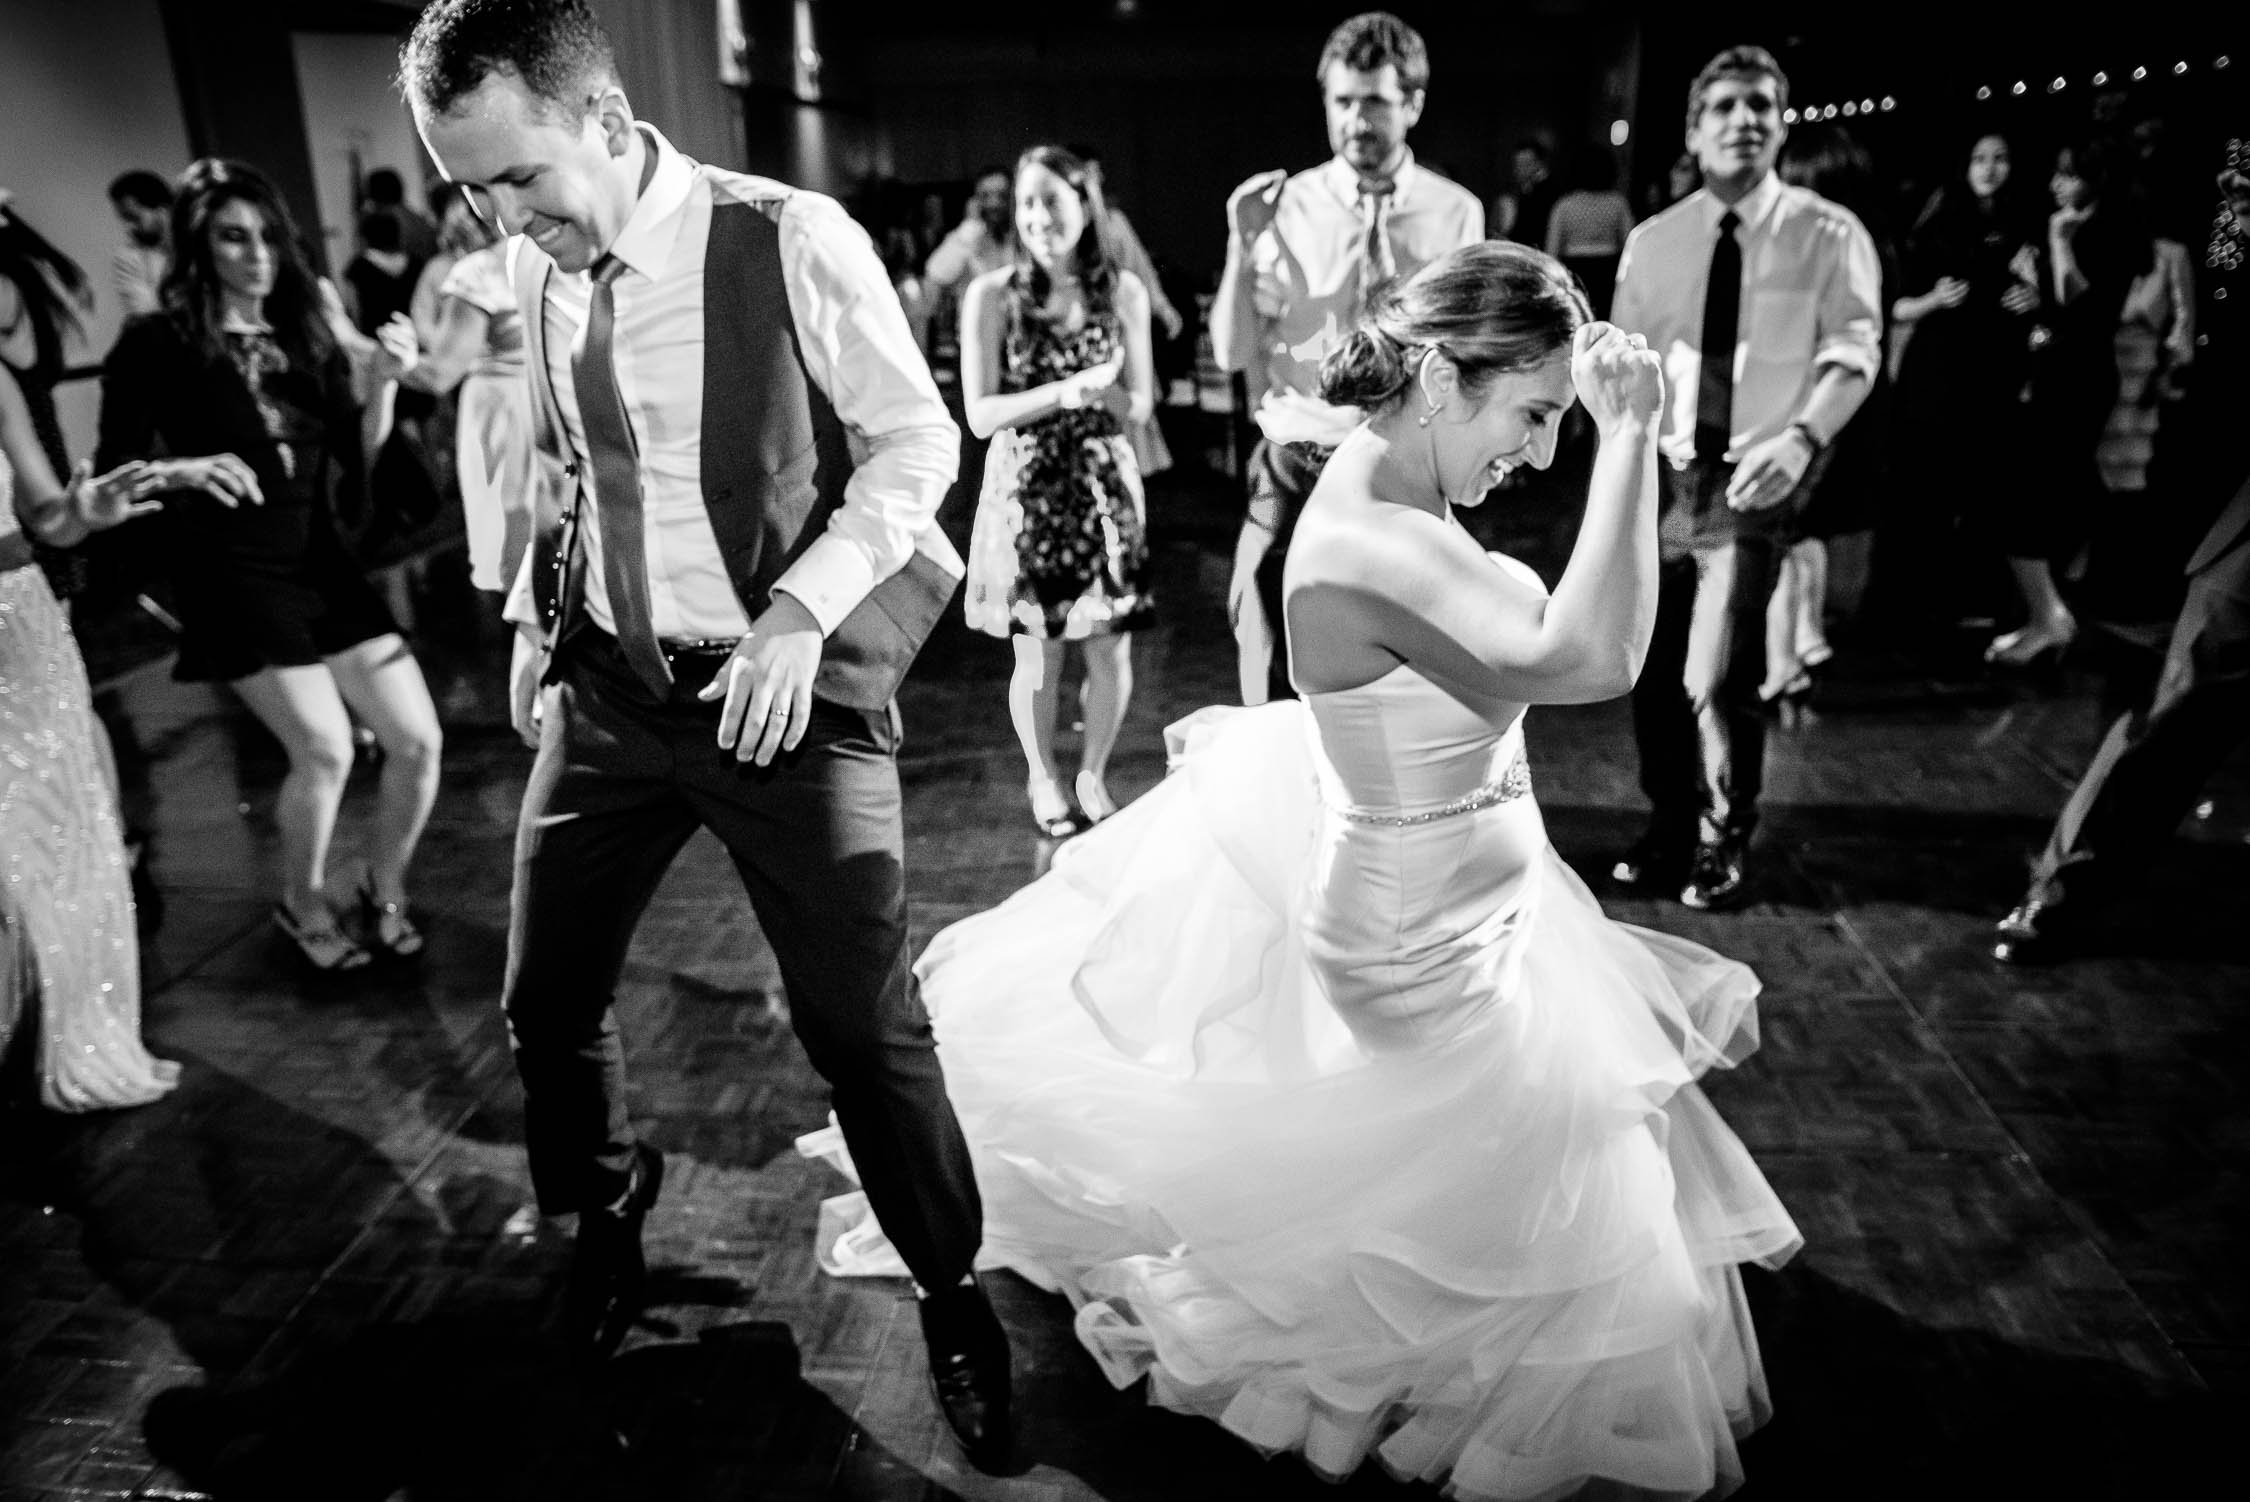 Bride and groom dance the night away during their wedding reception at Independence Grove in Libertyville.